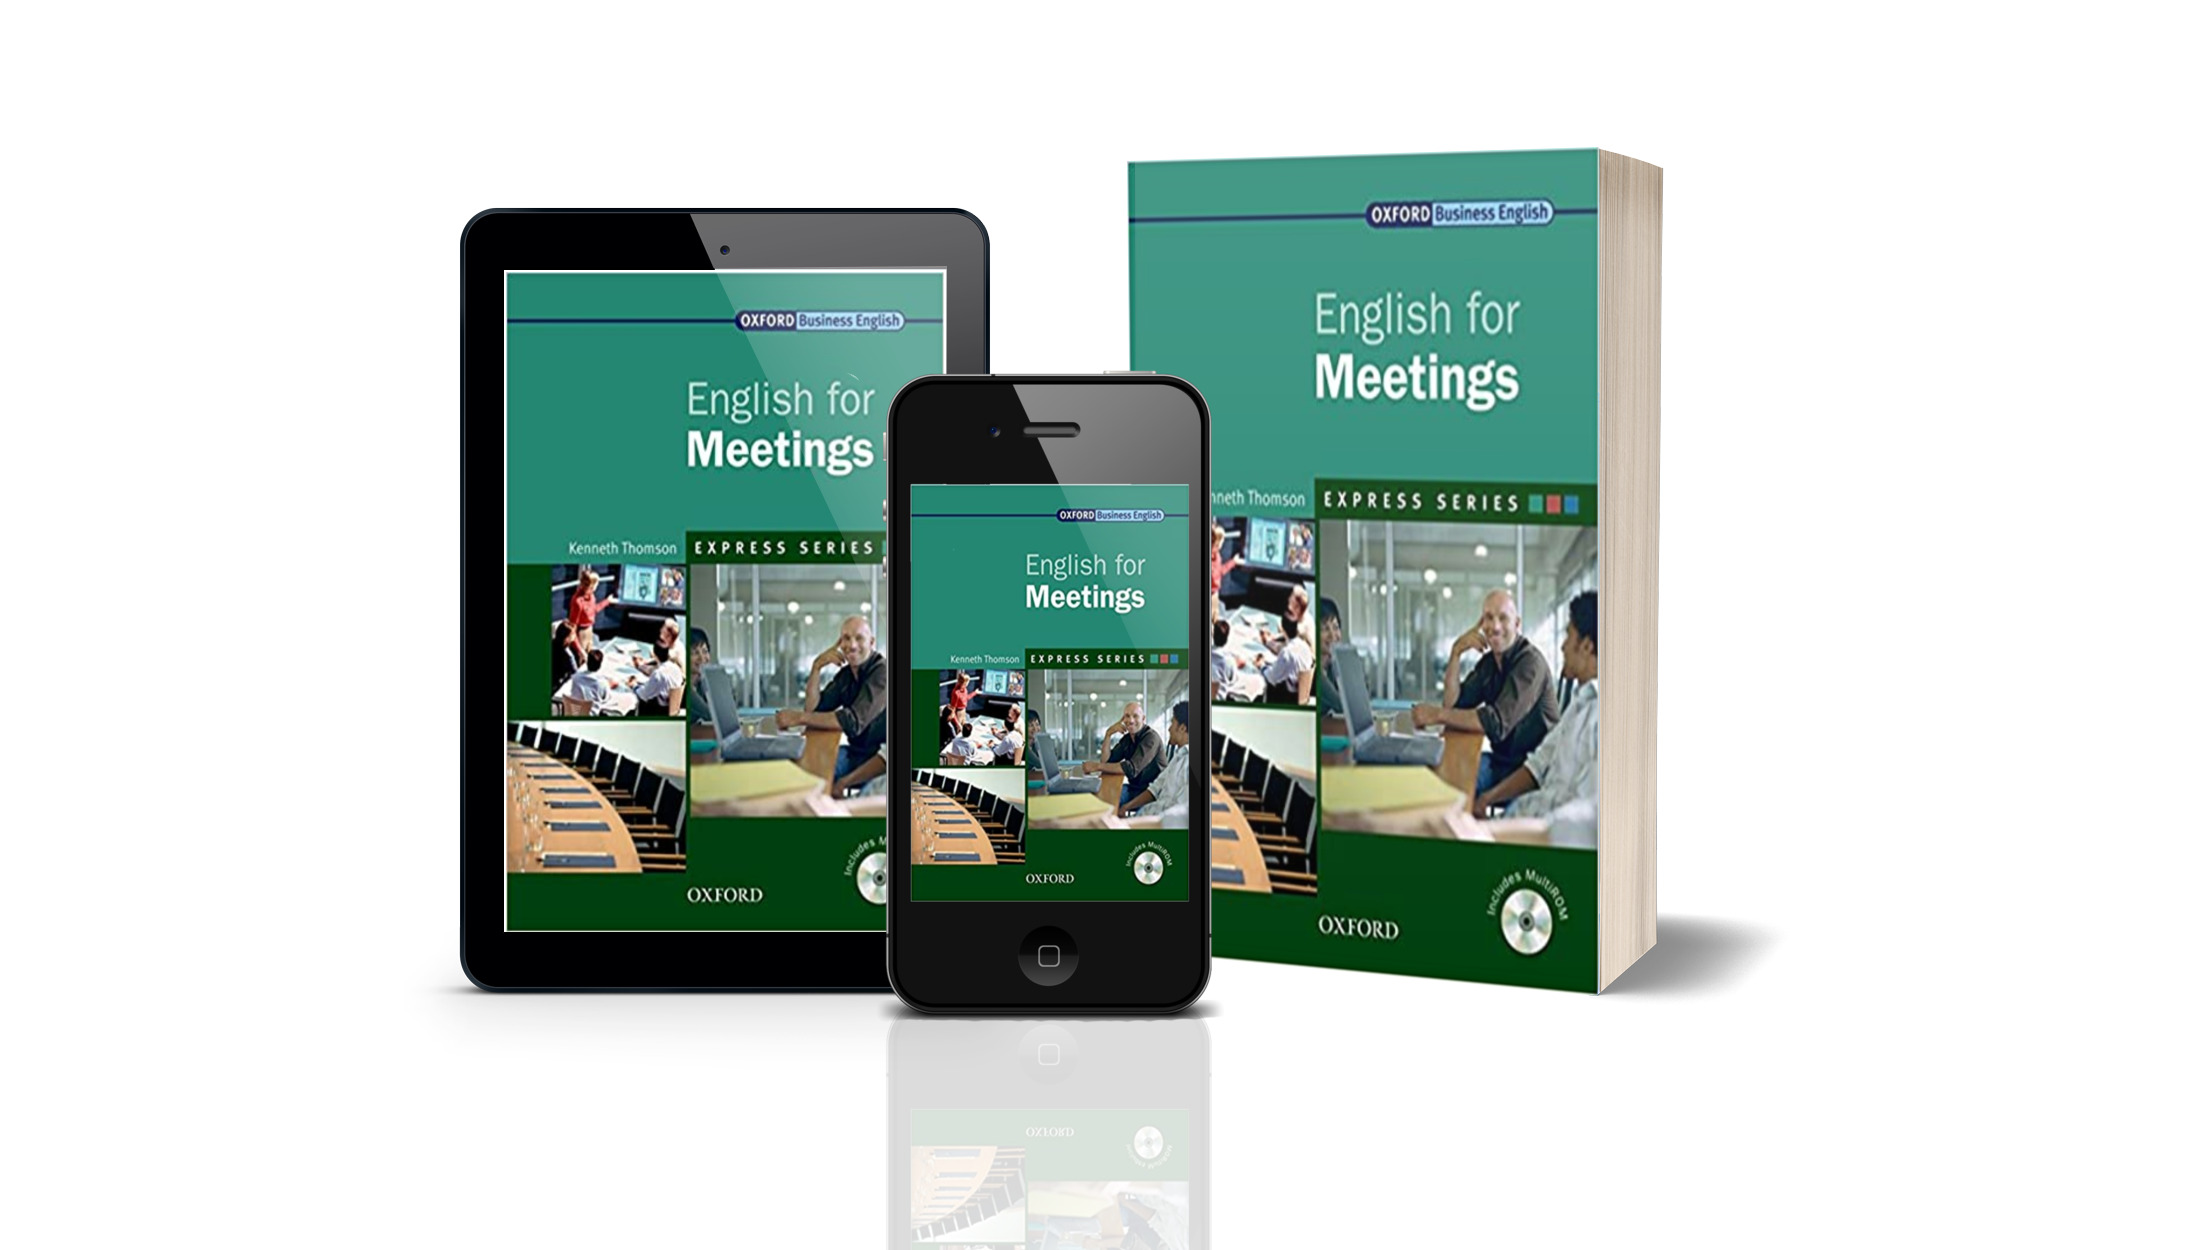 BOOK: ENGLISH FOR MEETING - OXFORD